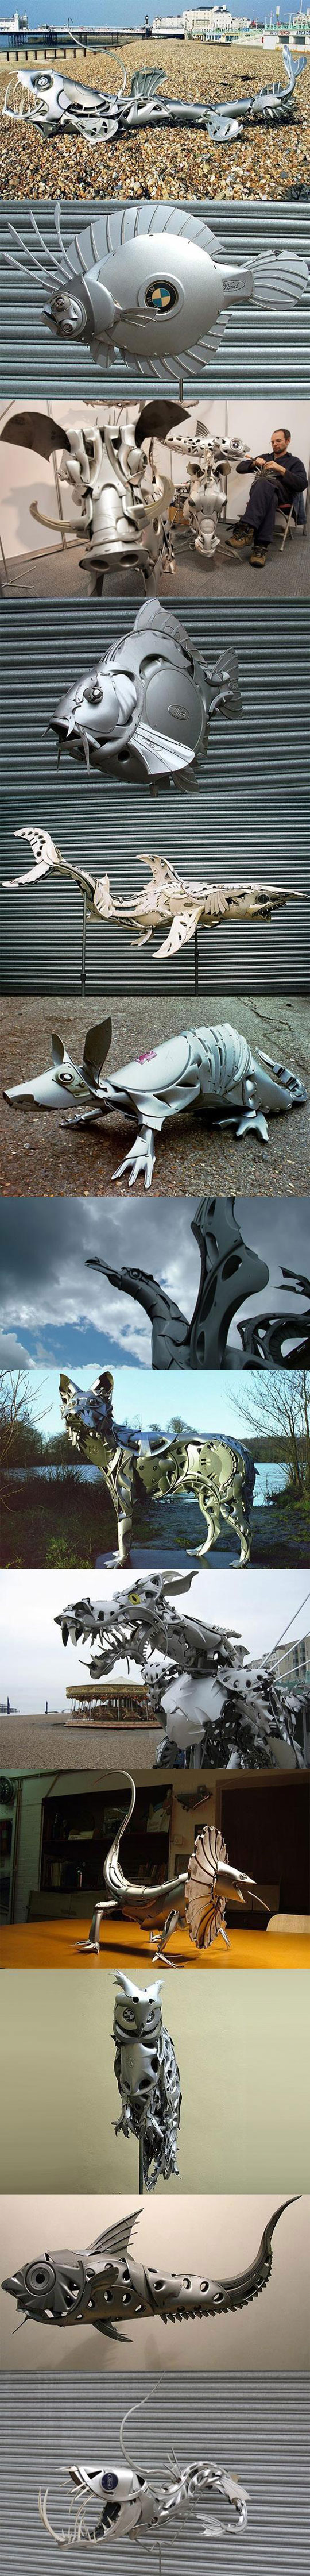 Hubcap sculptures